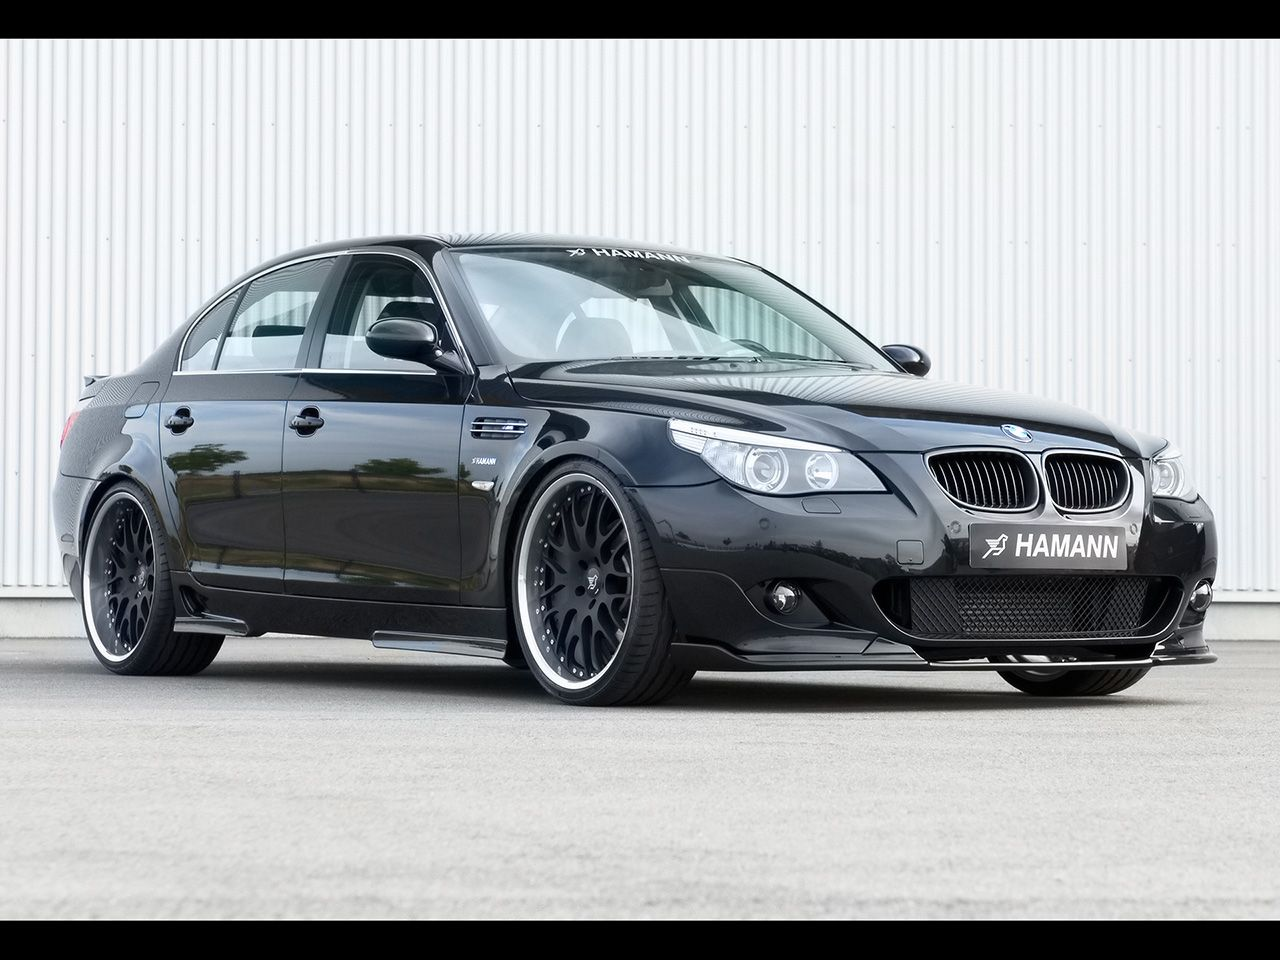 2007 Hamann Bmw 5 Series Front And Passenger Side Bmw Bmw 5 Series Car Features